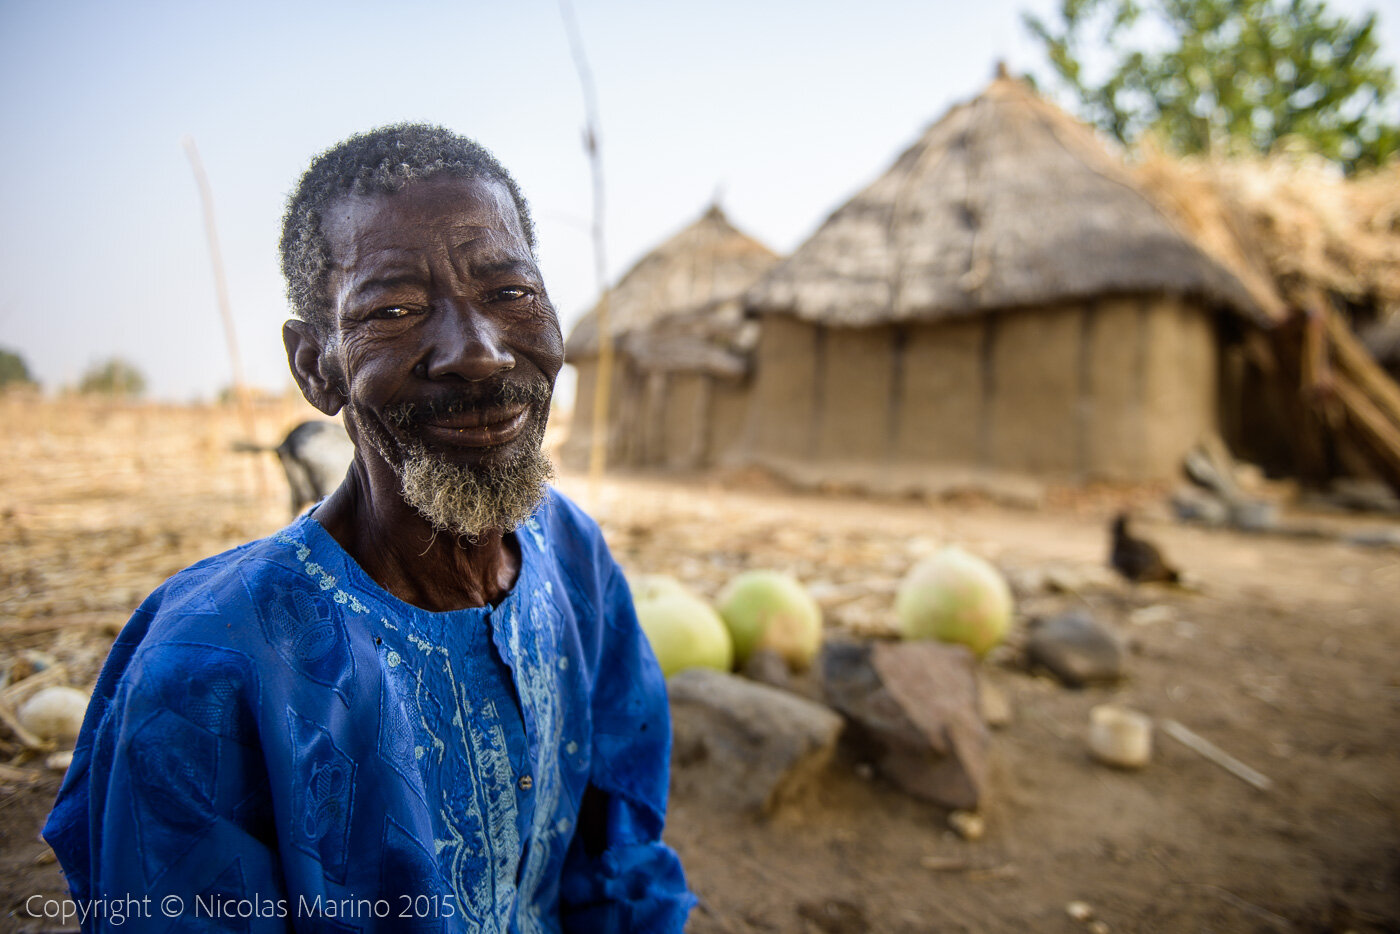 A Burkinabe man in his village, cutting pumpkins to turn them into drinking and eating containers. Burkina Faso